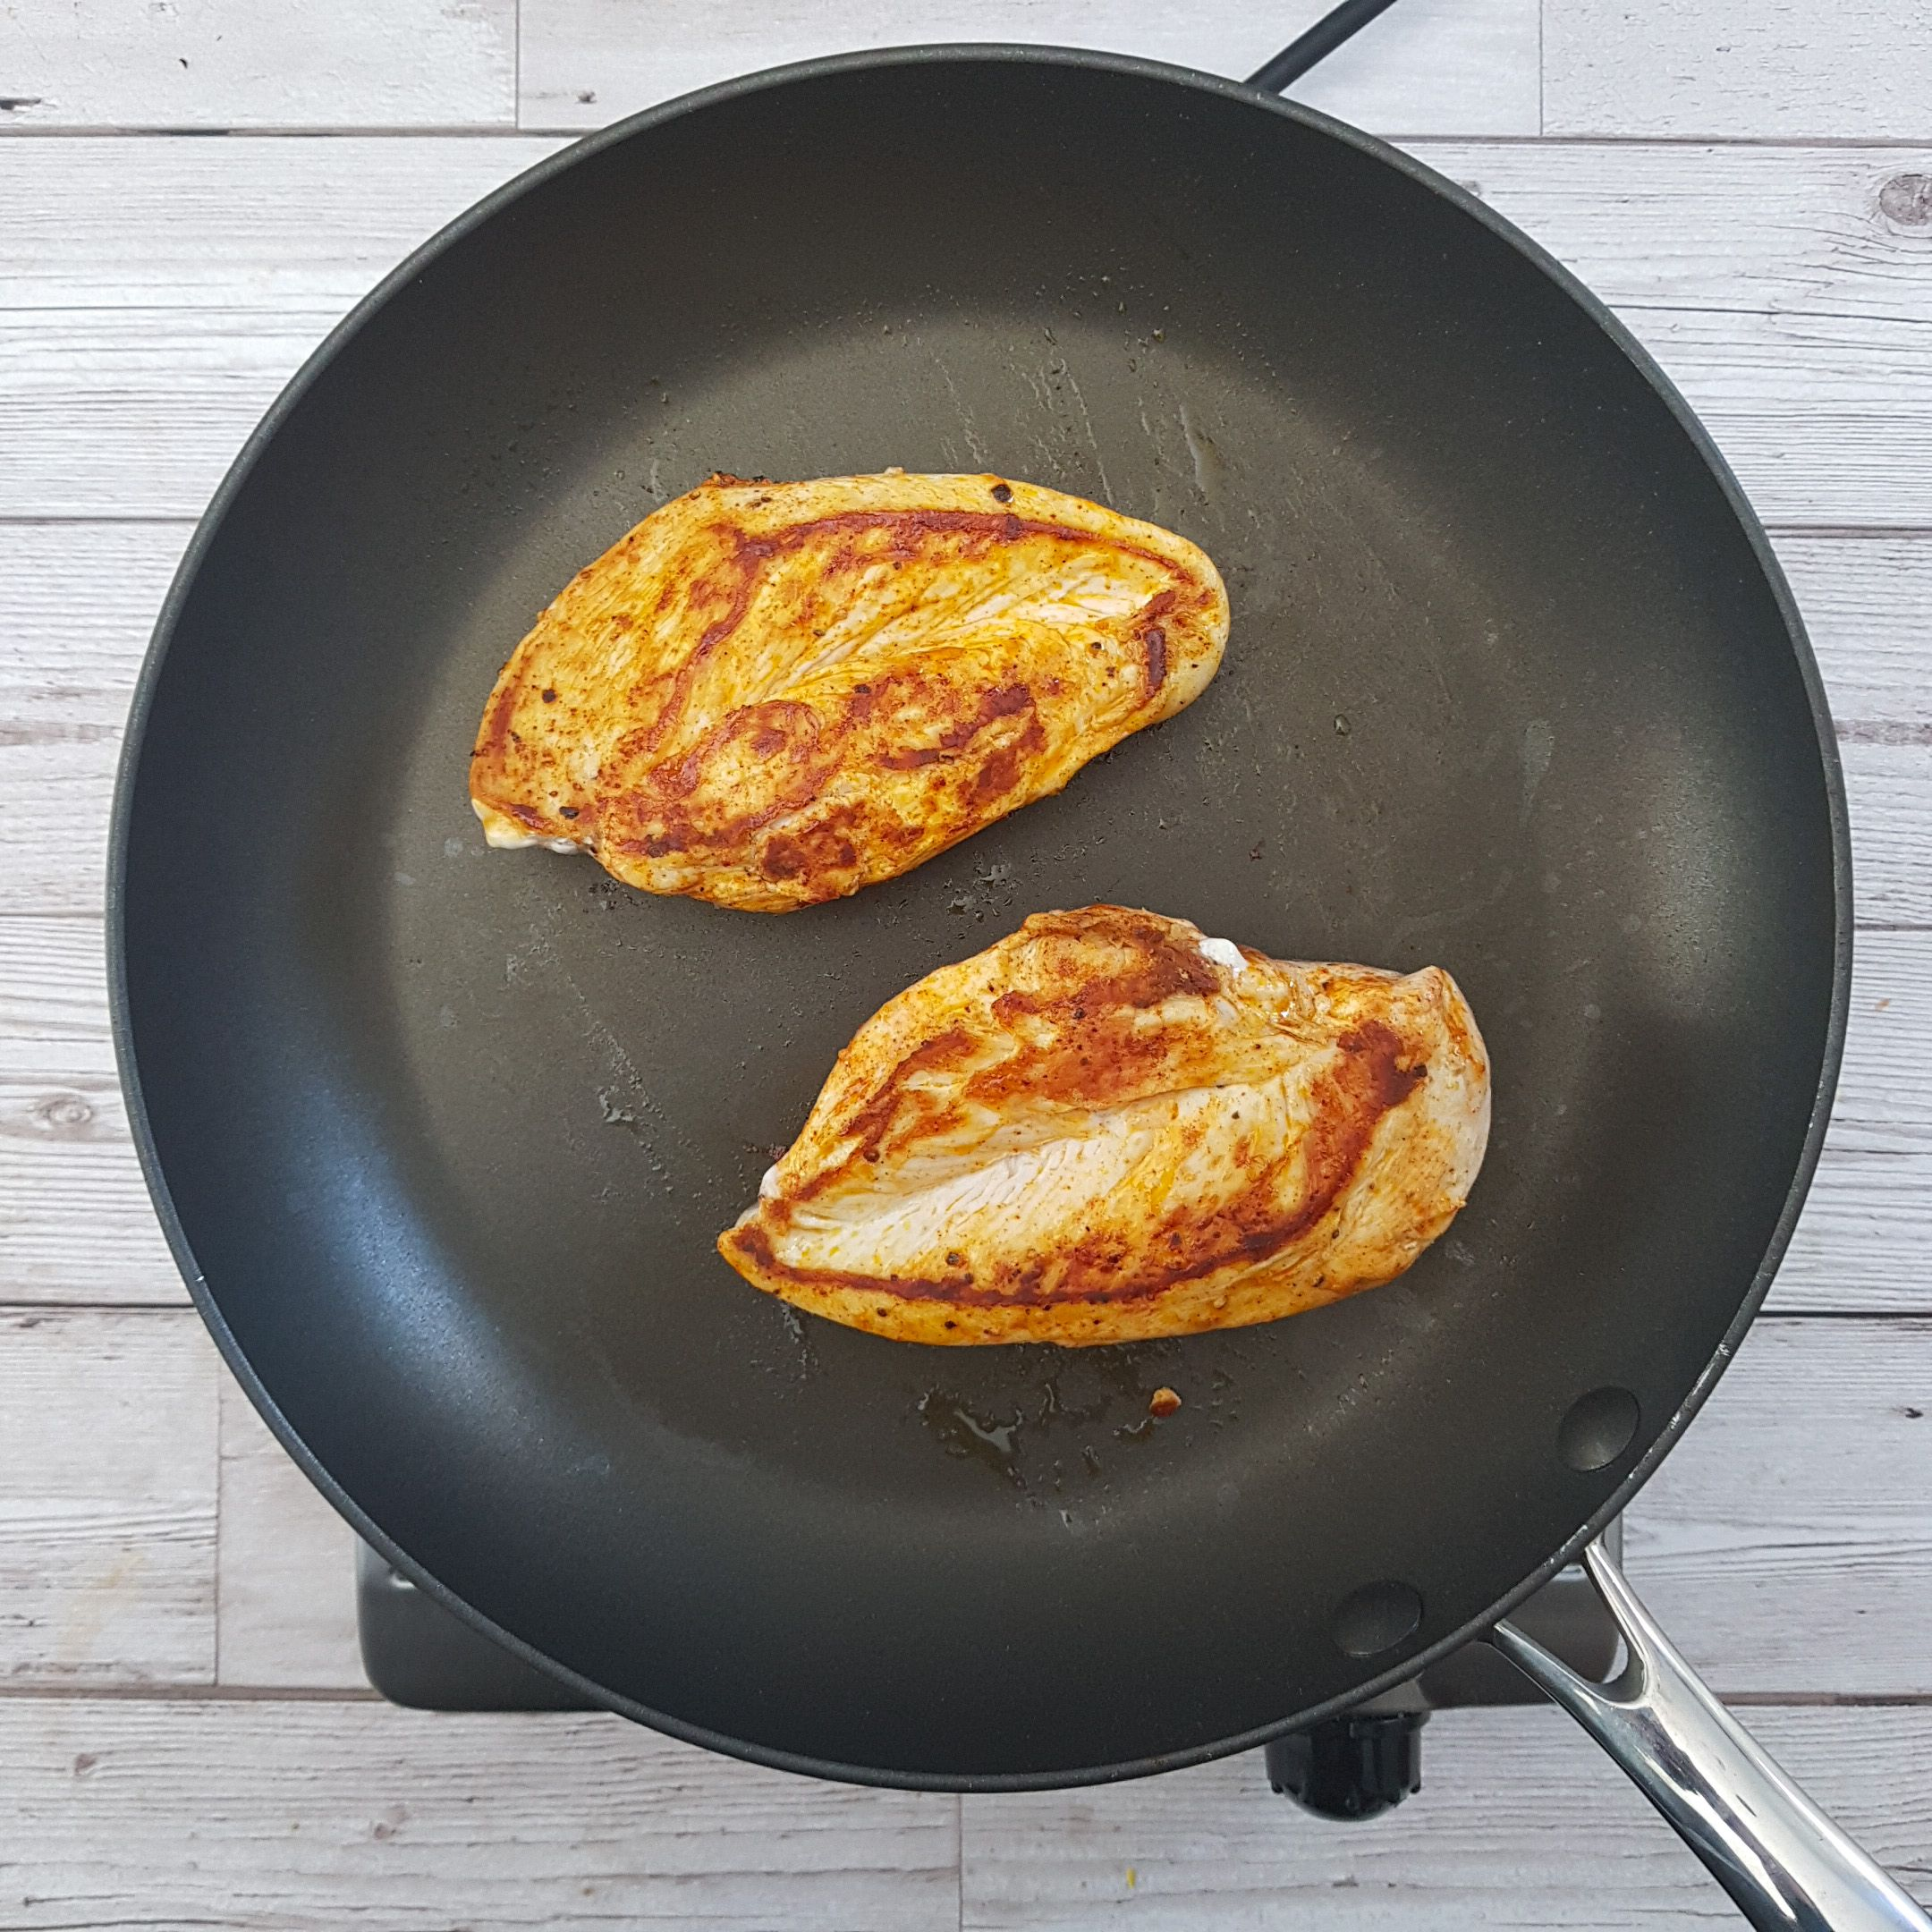 Meanwhile, Get a non-stick frying pan hot and add the chicken breasts. Lower the heat to medium and cook each side for 6-8 minutes. Until the juices run clear and the meat is white all the way through